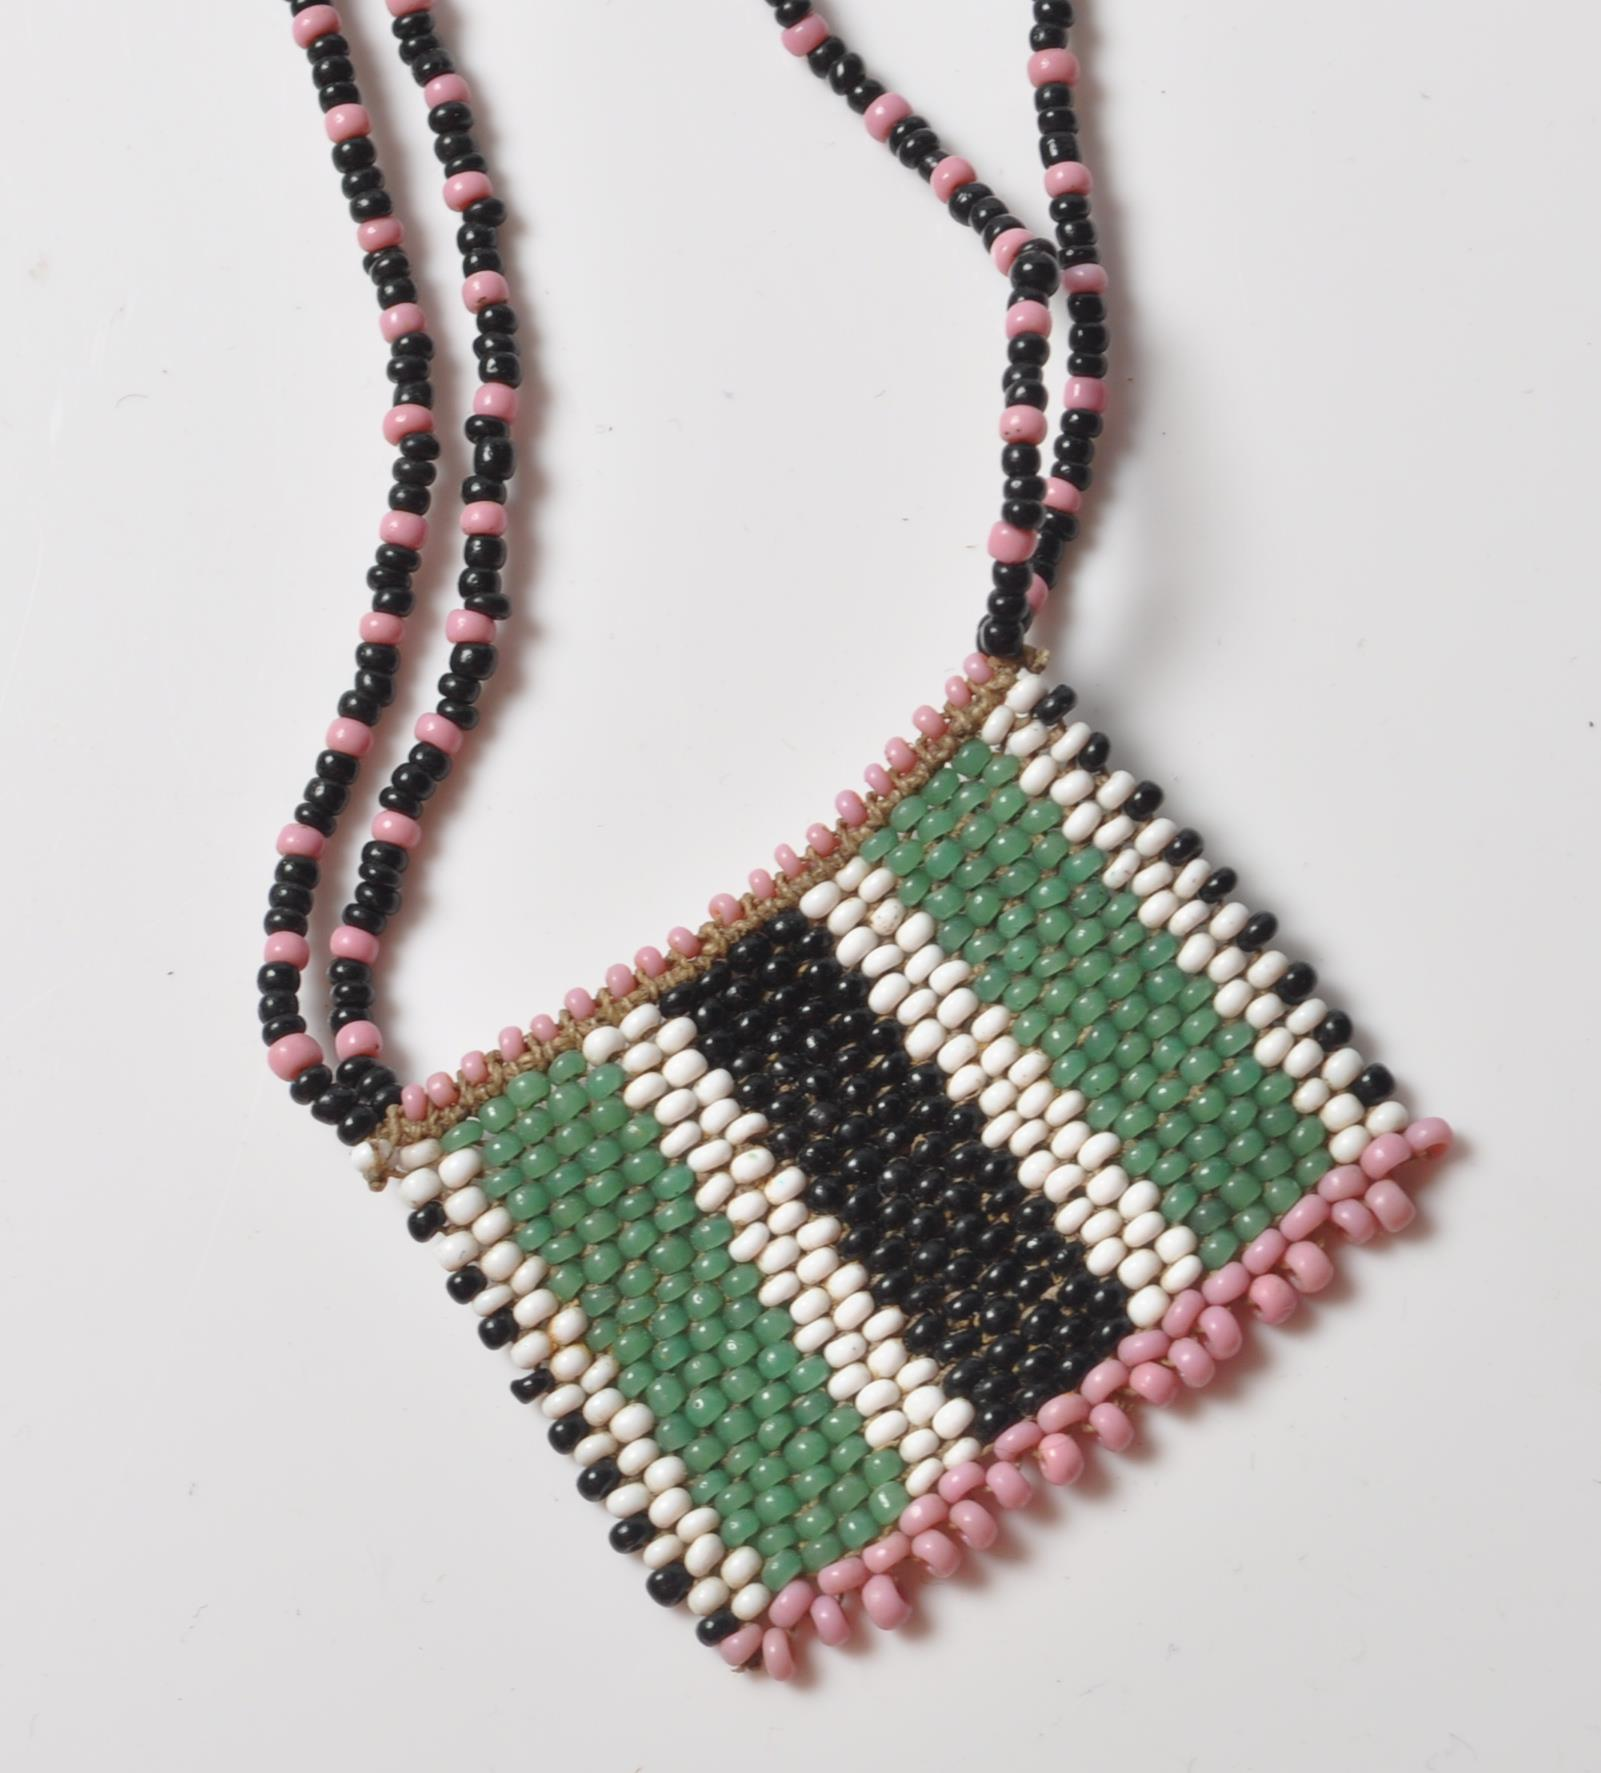 COLLECTION OF ZULU AFRICAN AND NATIVE AMERCIAN JEWELLERY. - Image 6 of 9